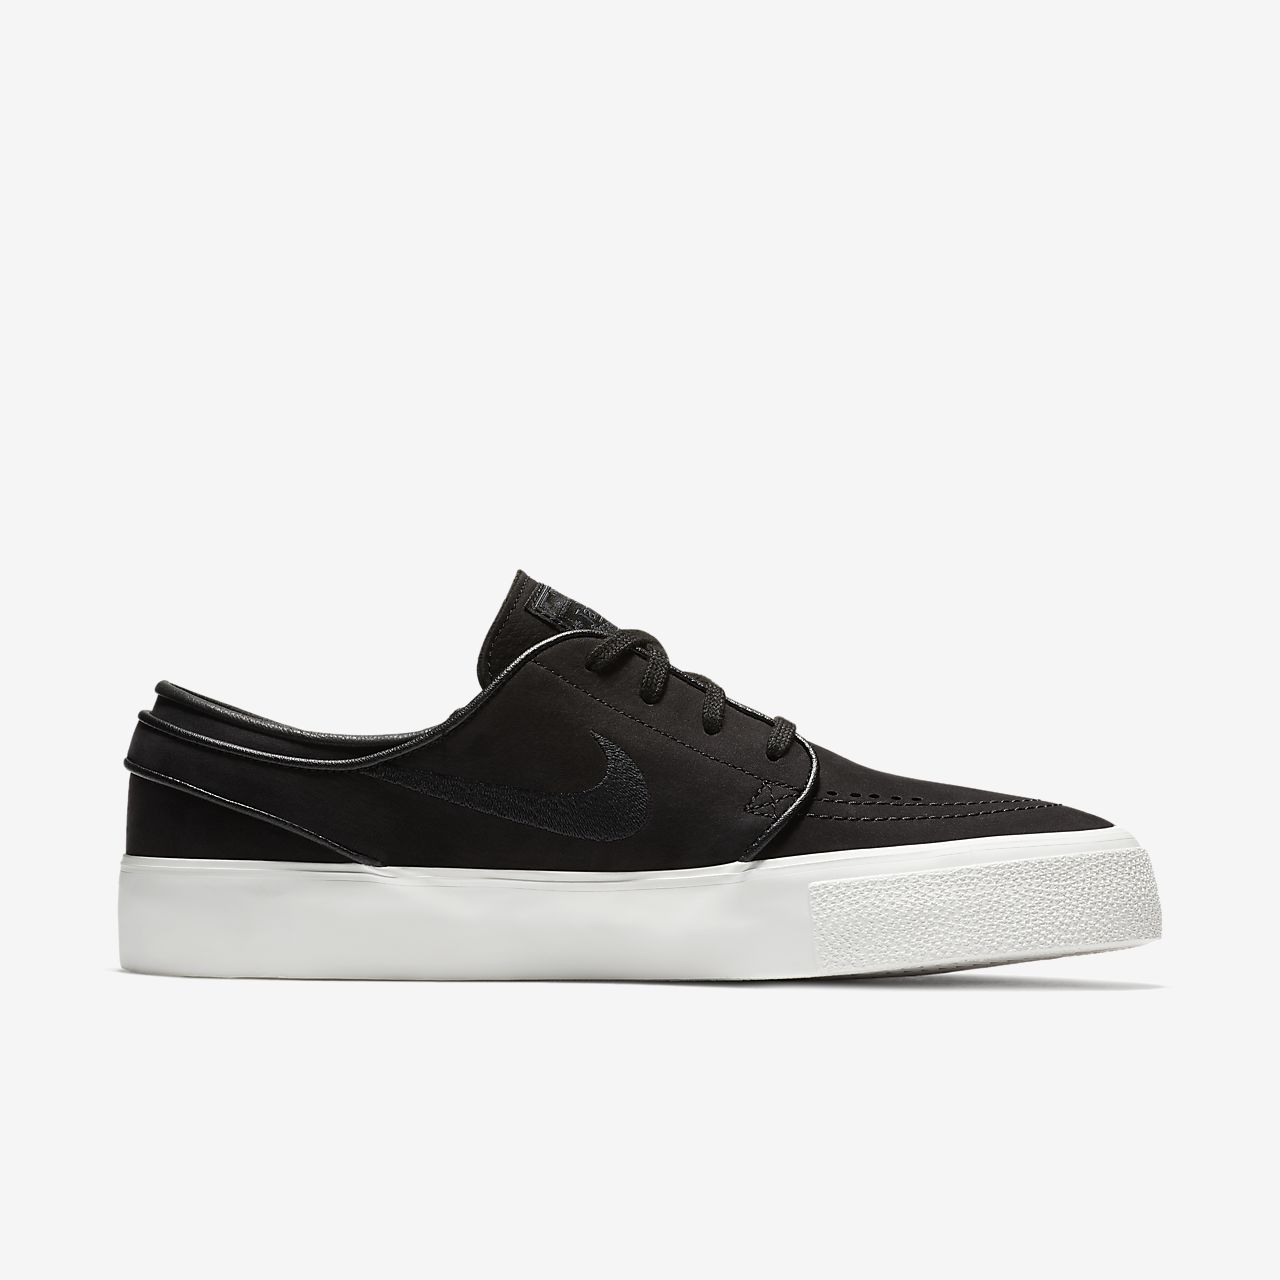 100% guaranteed for sale Nike Men's SB Zoom Janoski HT Sk... sast for sale sale amazon ZHRgTR